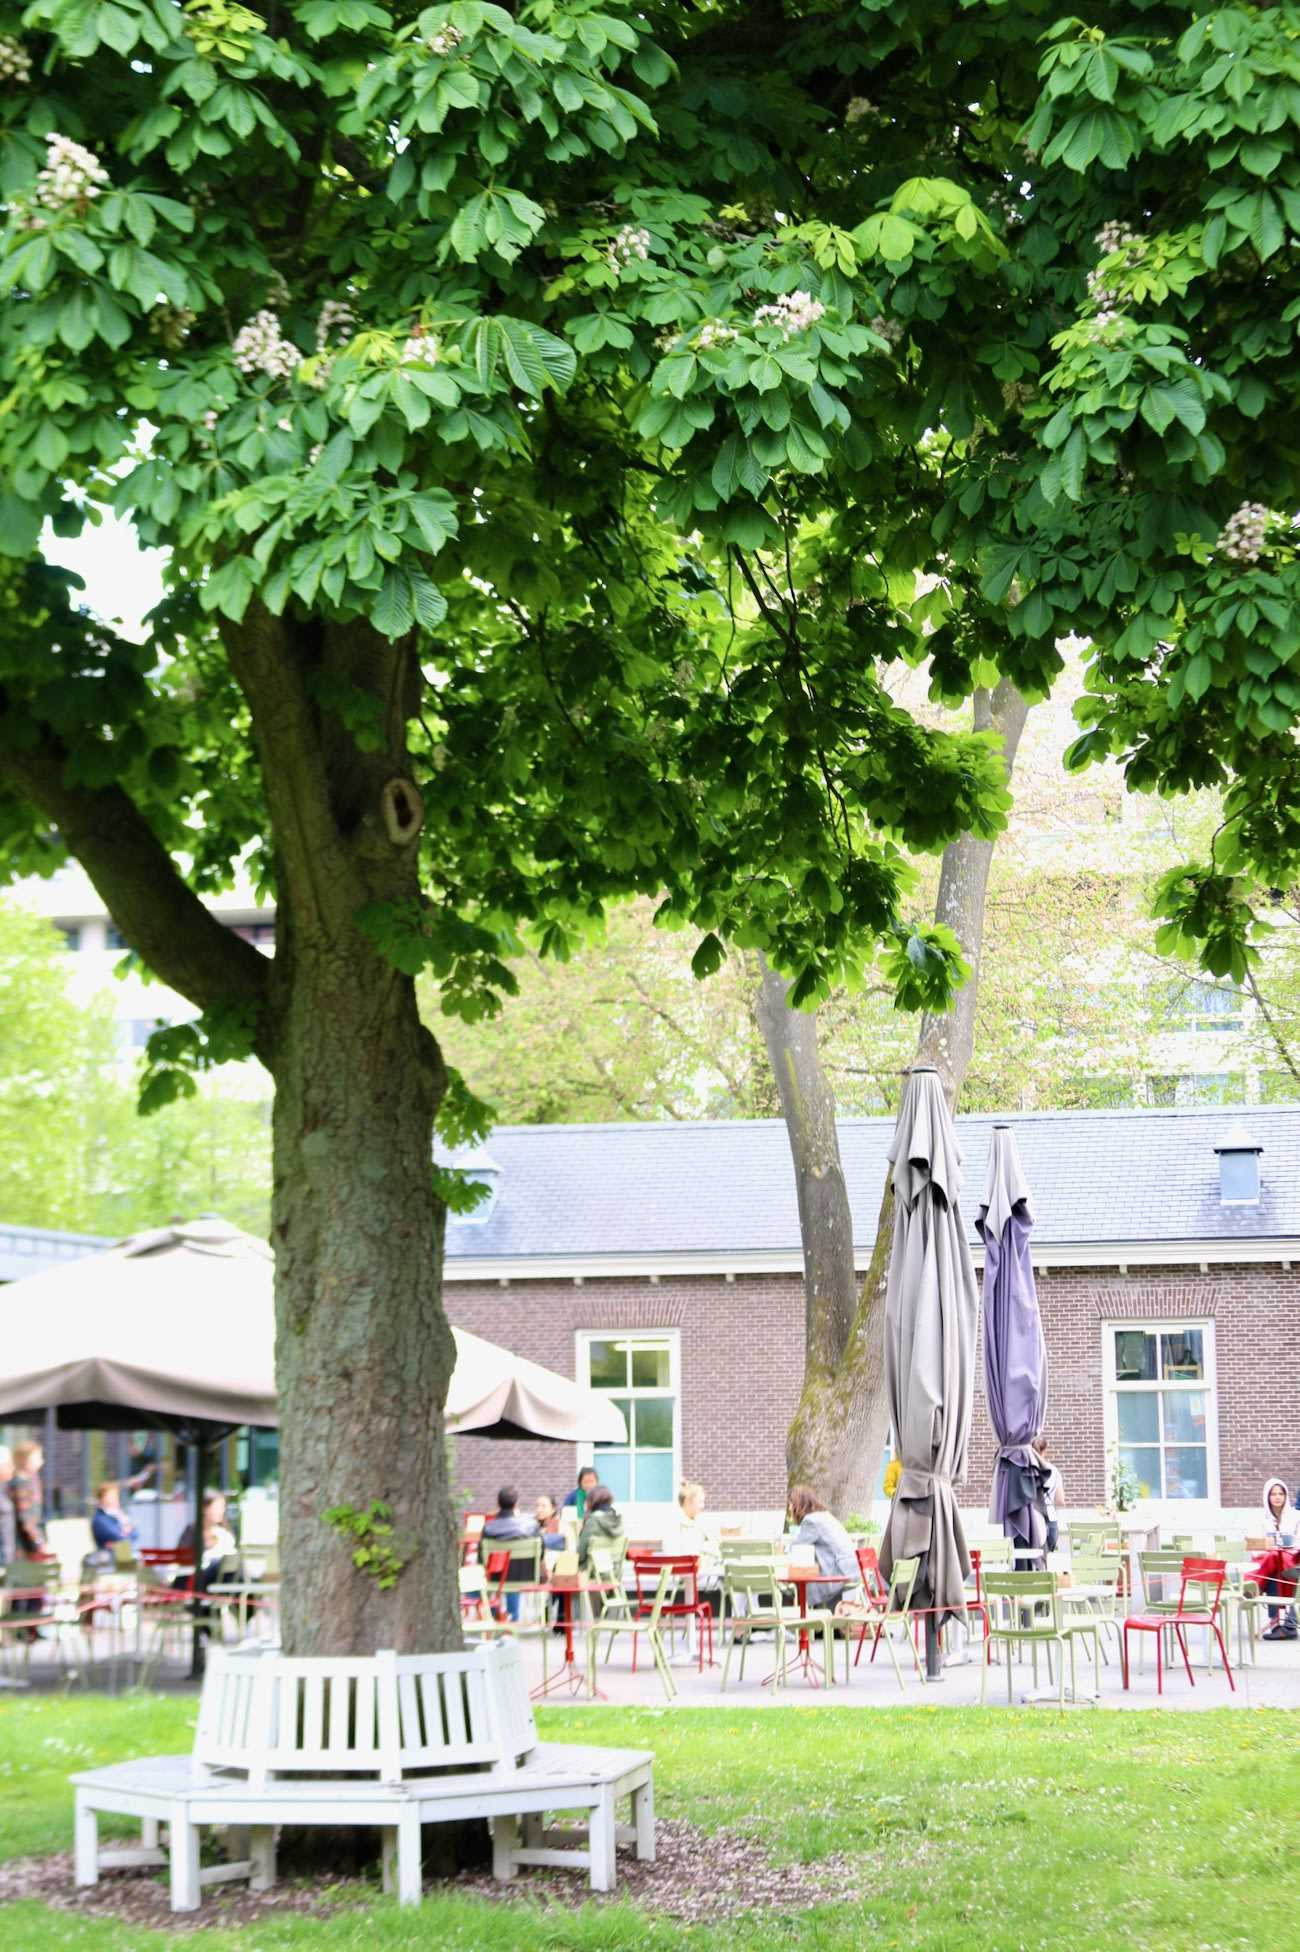 Beautiful park in Amsterdam is setting for brunch restaurant Dignita's outdoor dining area